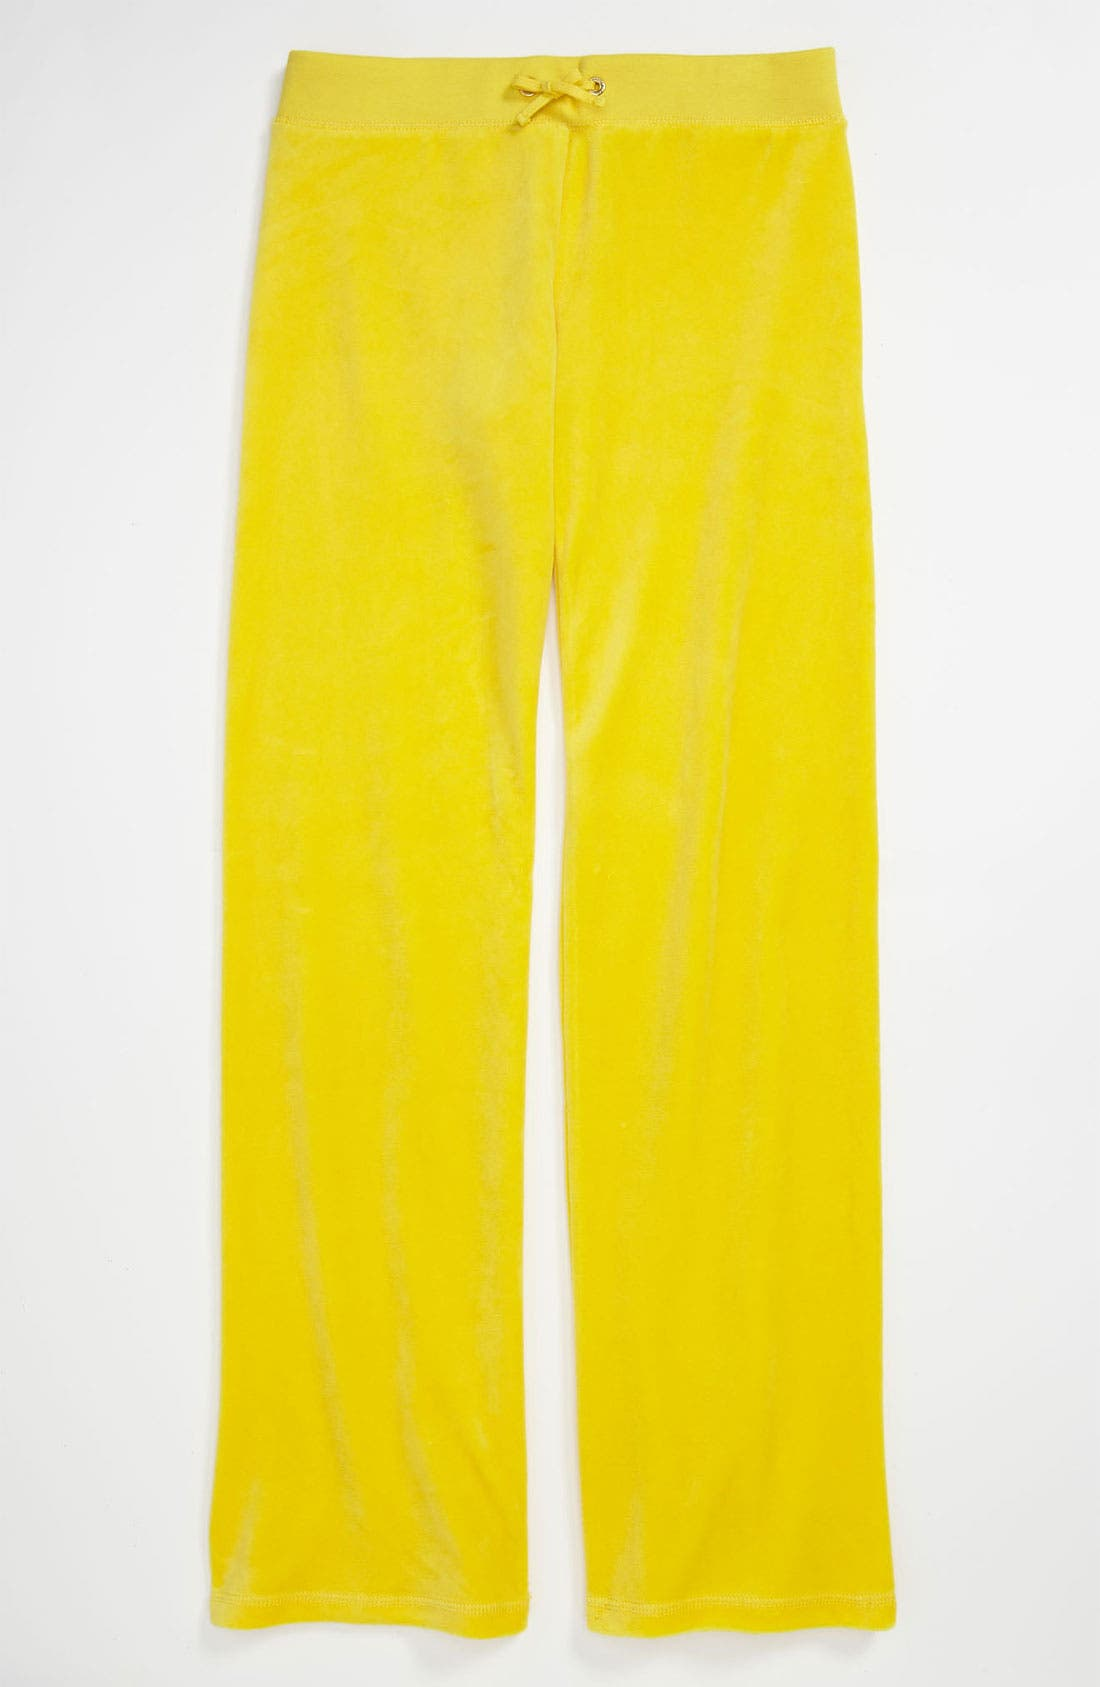 Main Image - Juicy Couture 'Basic' Velour Pants (Little Girls & Big Girls)